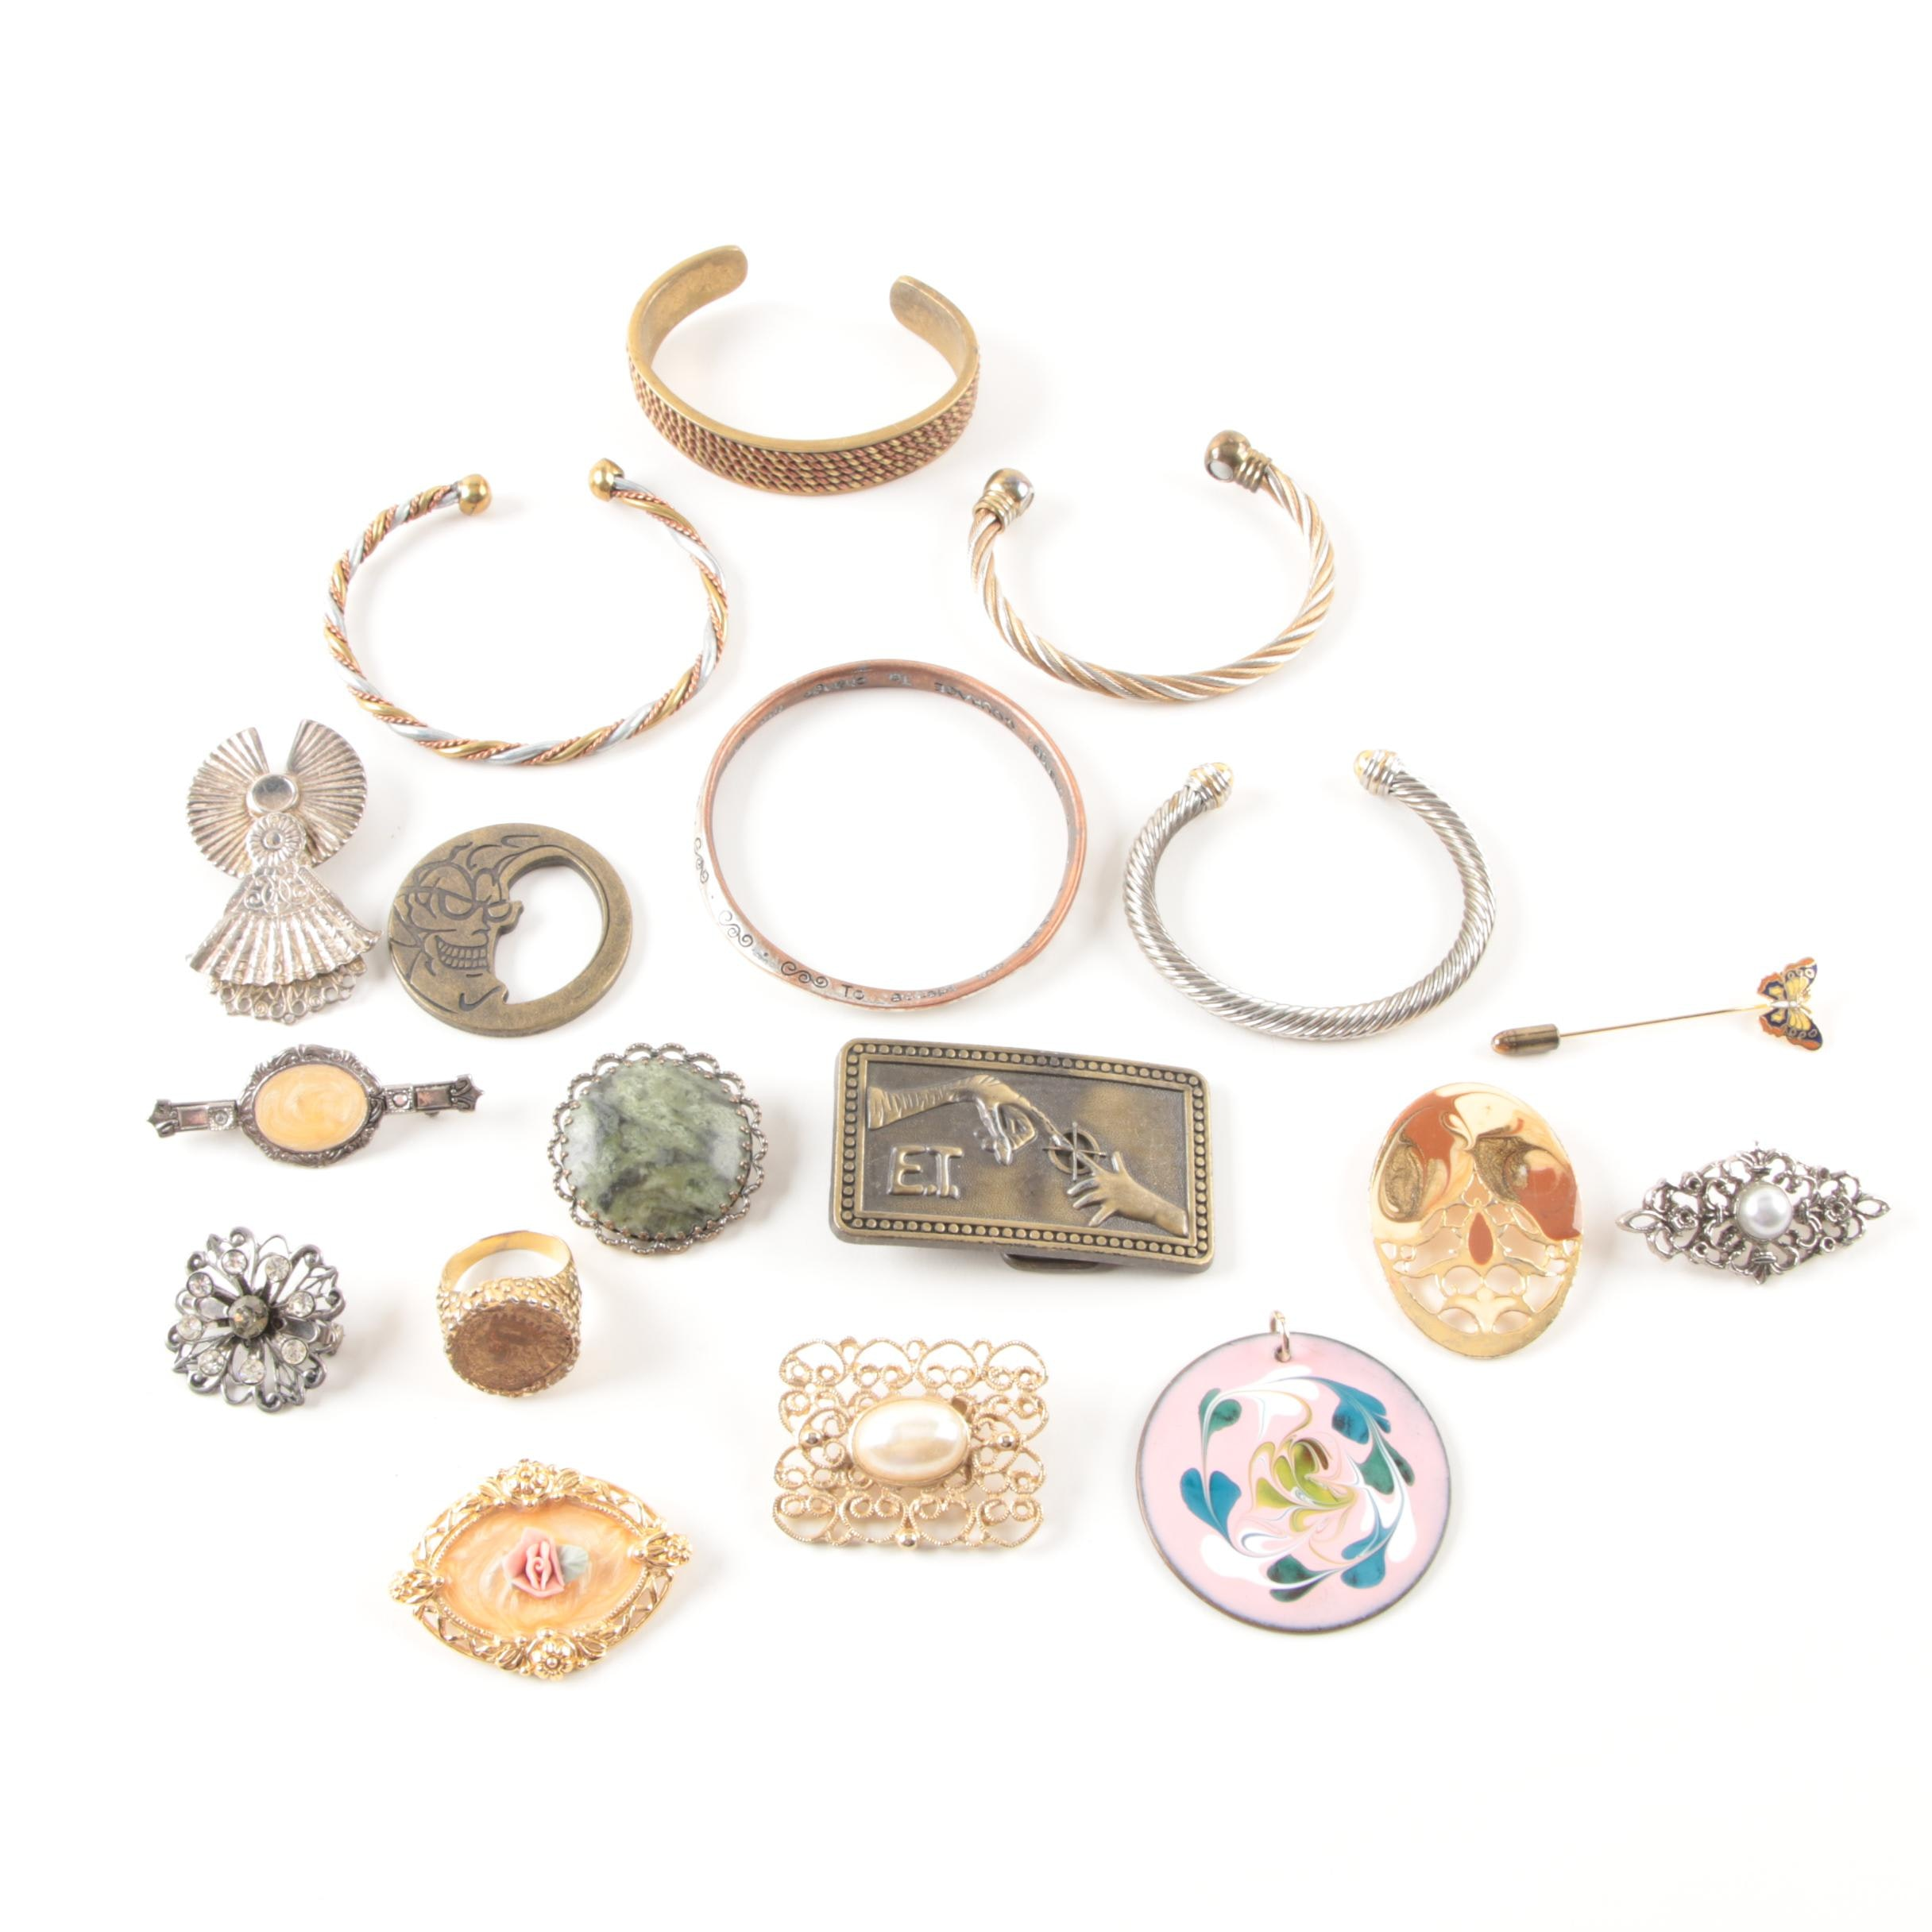 Costume Jewelry Selection Including Serpentine and Imitation Pearl